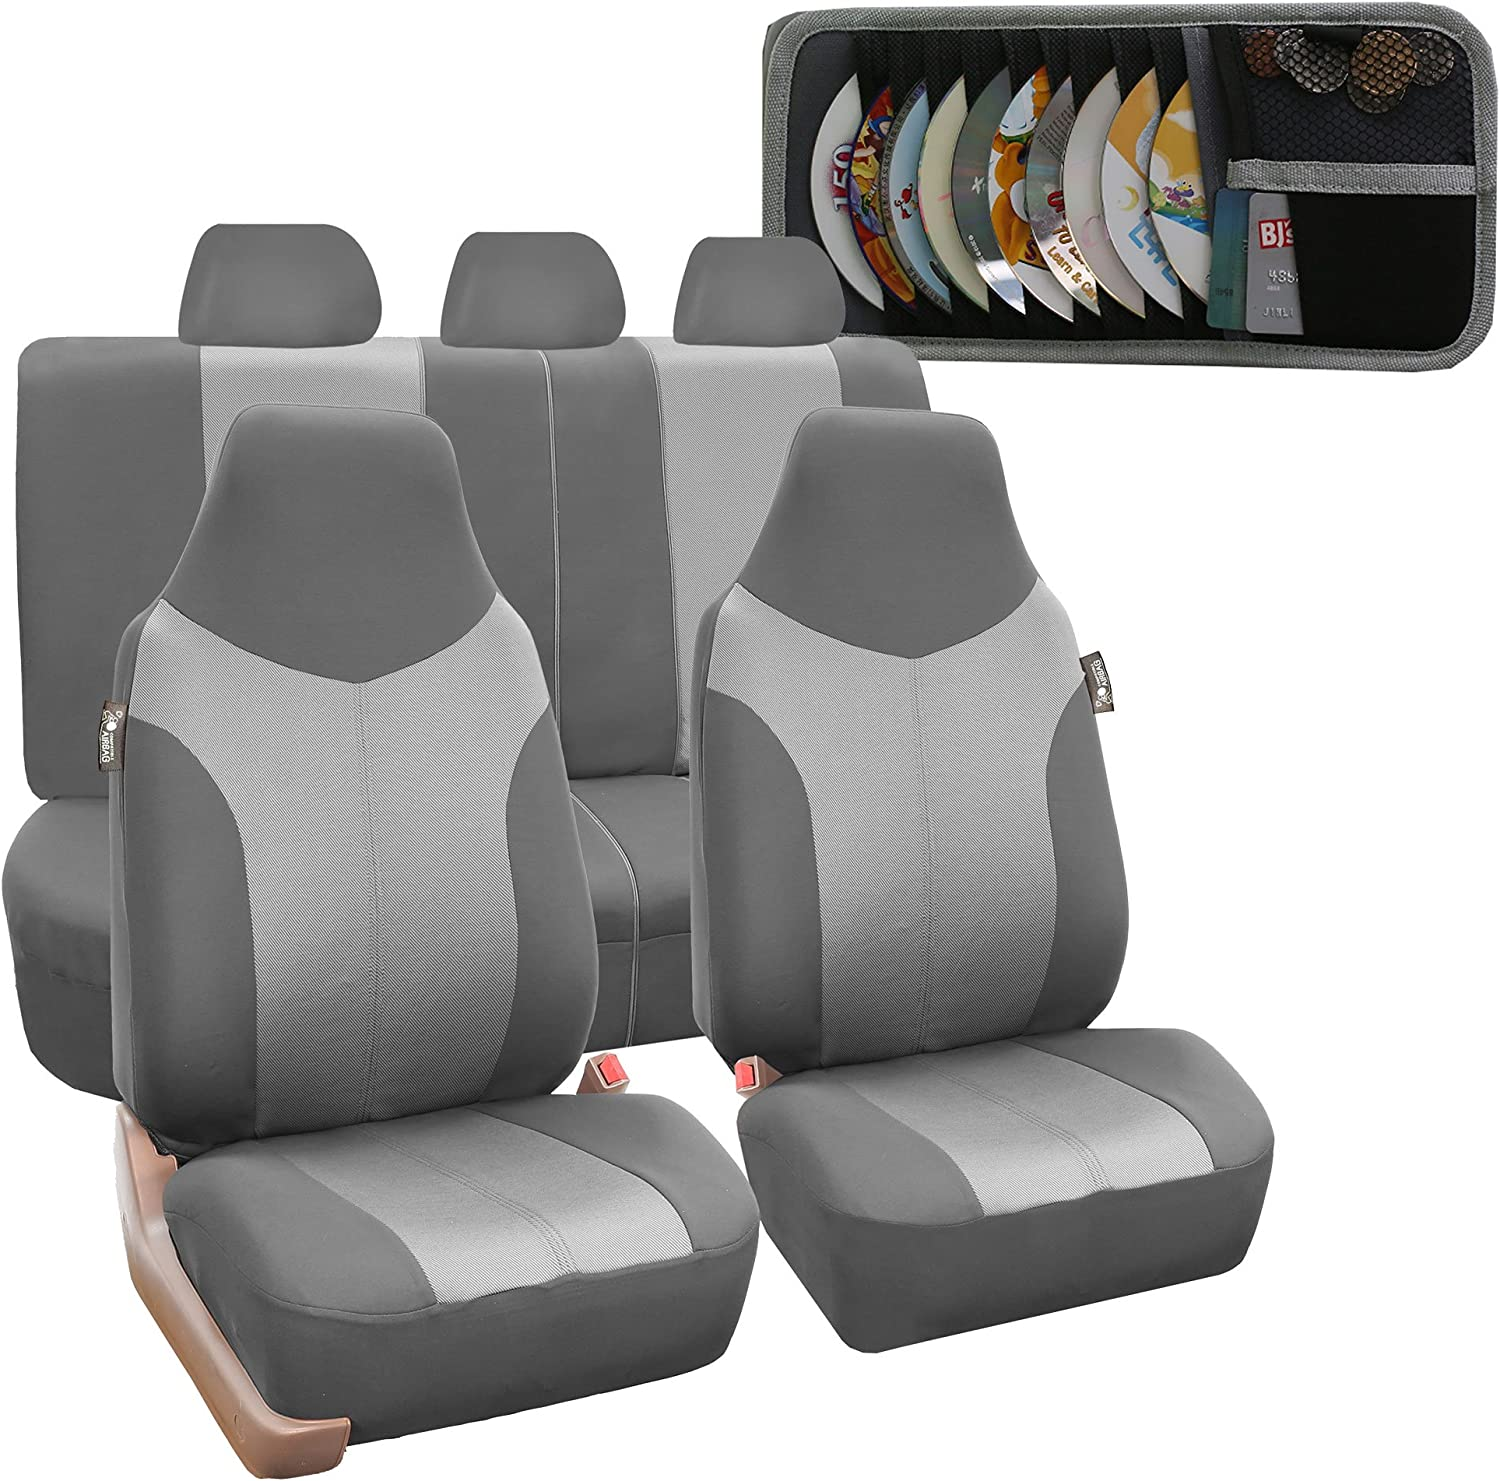 FH Group FB101115 Supreme Twill Fabric High Back Car Seat Cover (Full Set Airbag Ready and Split Rear Bench), Gray w Fit Most Car, Truck, SUV, or Van